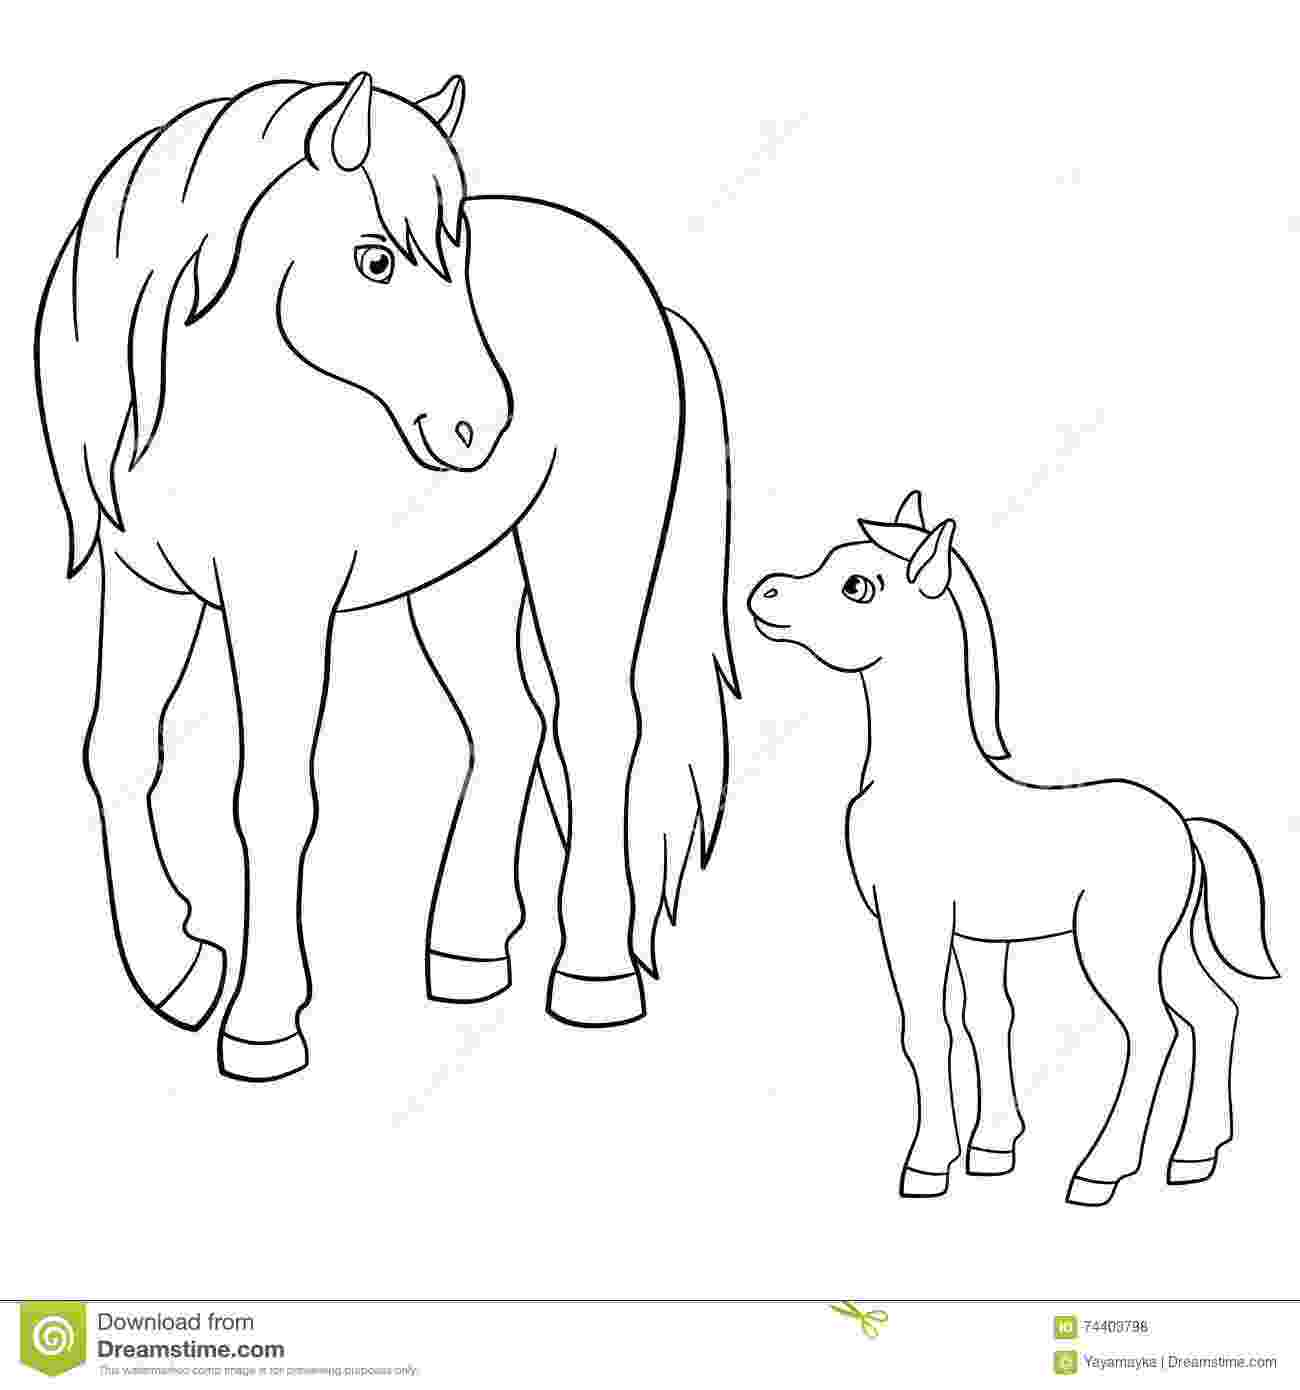 coloring pages of animals horses coloring pages farm animals mother horse with foal coloring pages horses of animals